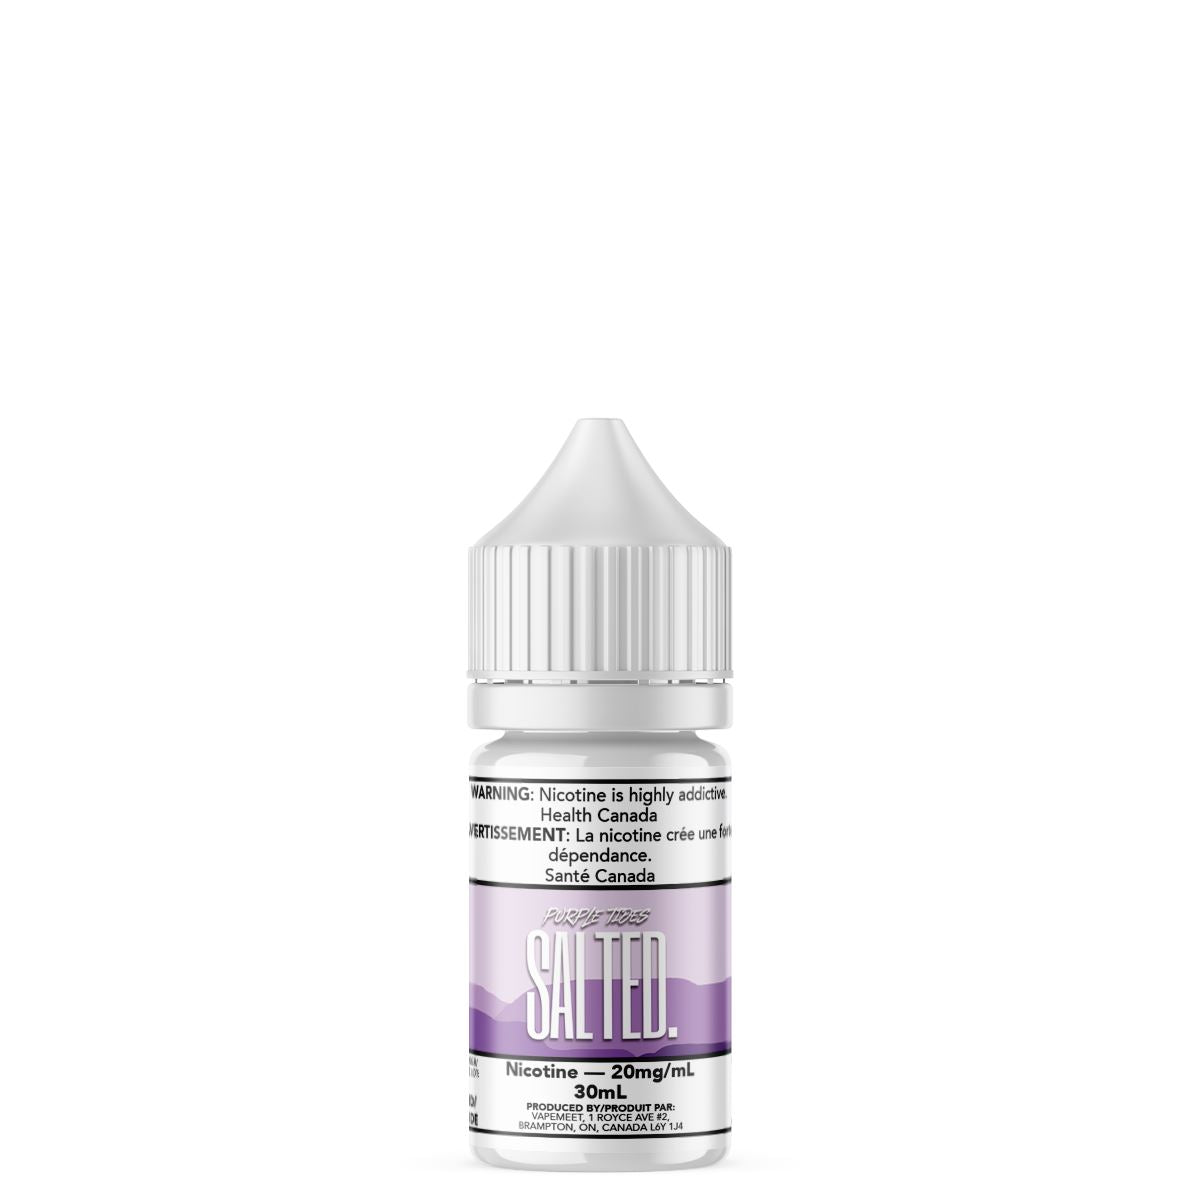 Salted. - Purple Tides E-Liquid Salted. 30mL 20 mg/mL